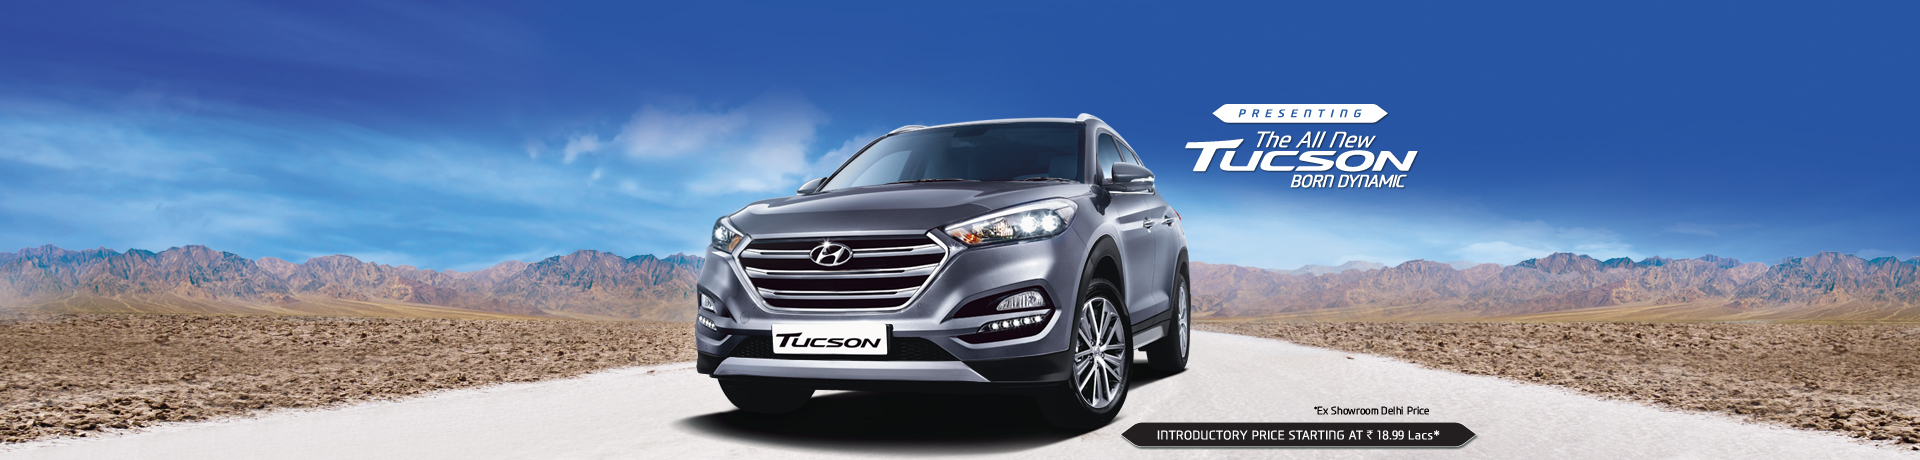 All New Hyundai Tucson Dealer in Thane and Mumbai - Shreenath Hyundai